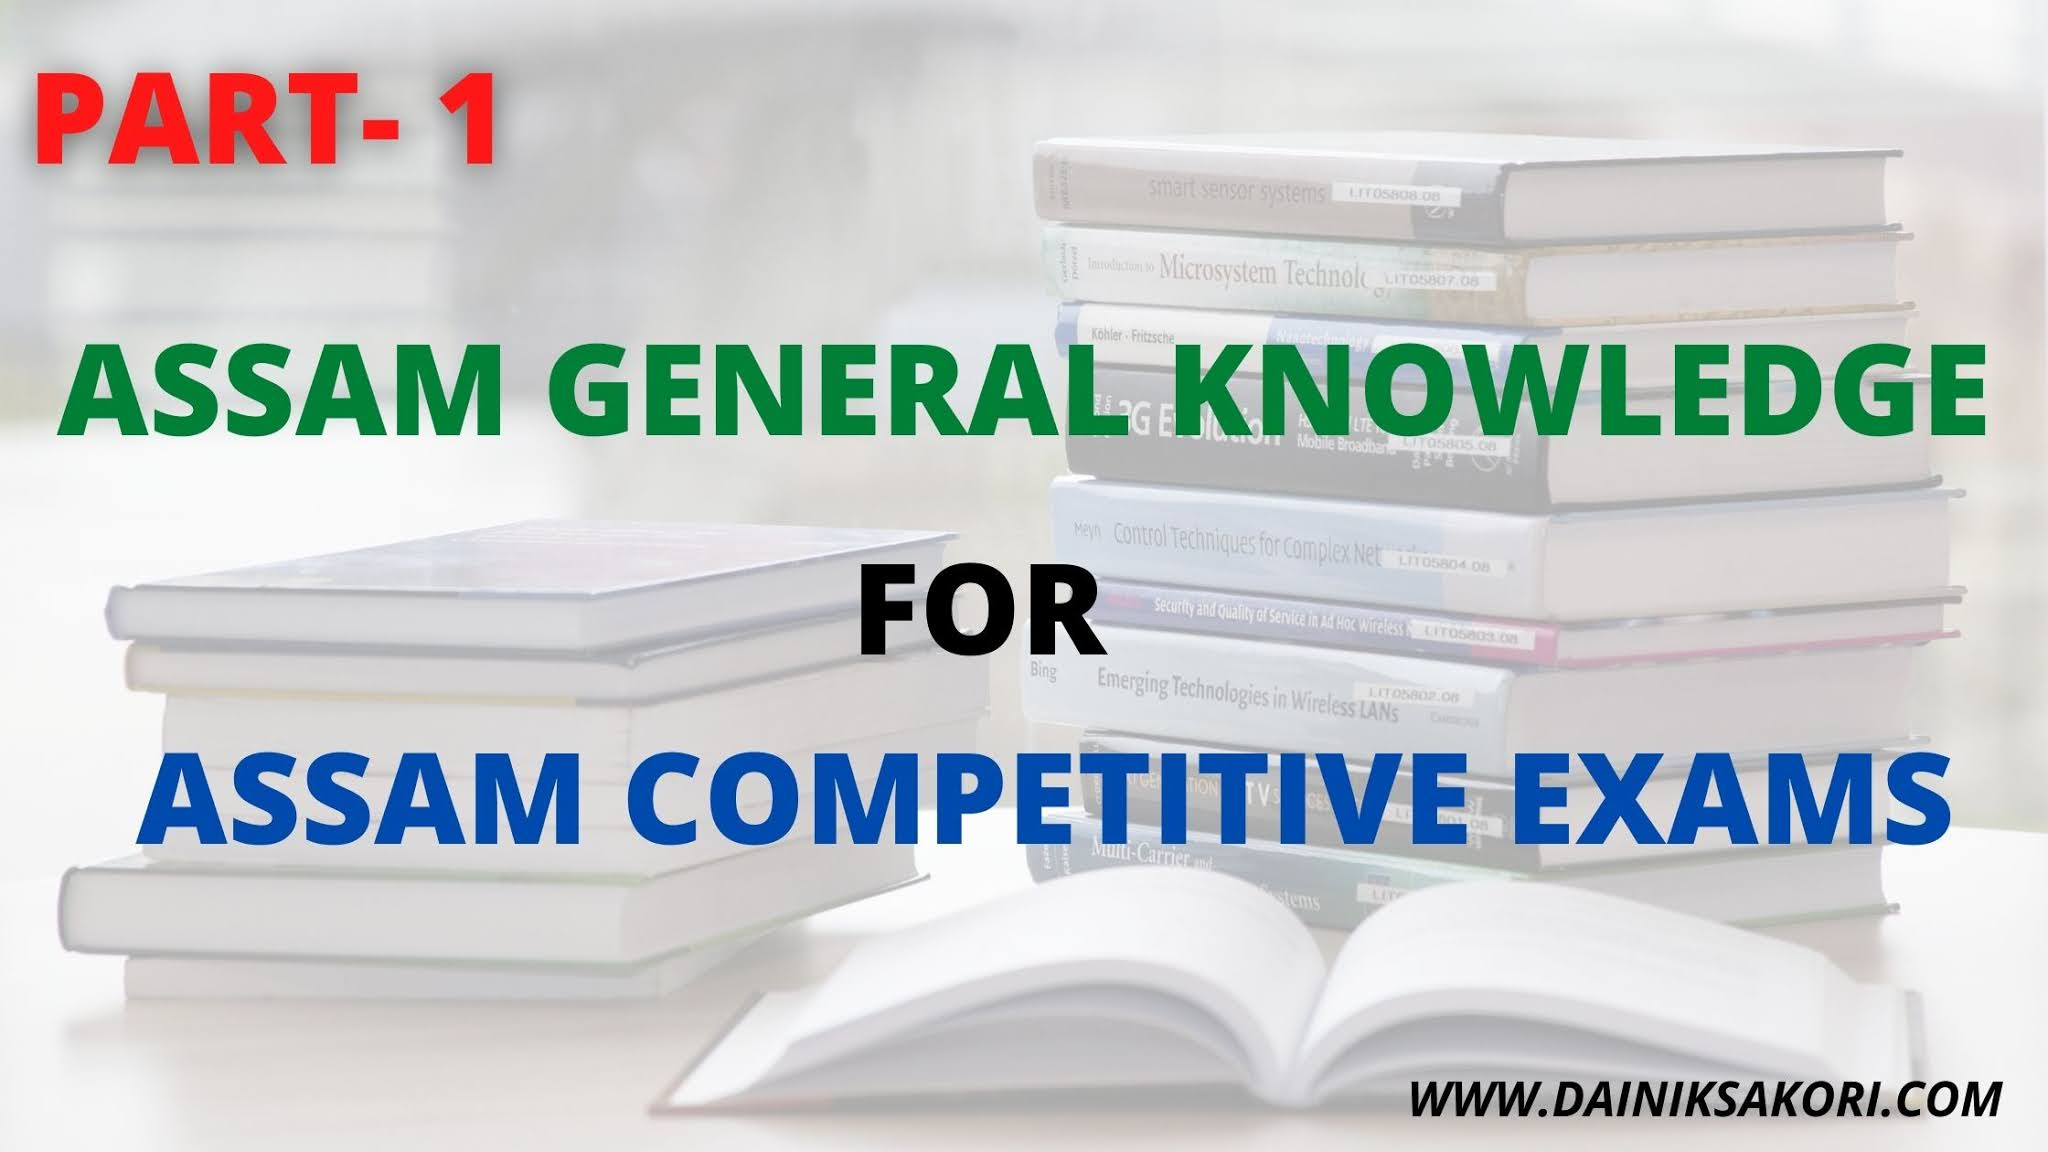 ASSAM GK QUESTIONS FOR ASSAM COMPETITIVE EXAMS